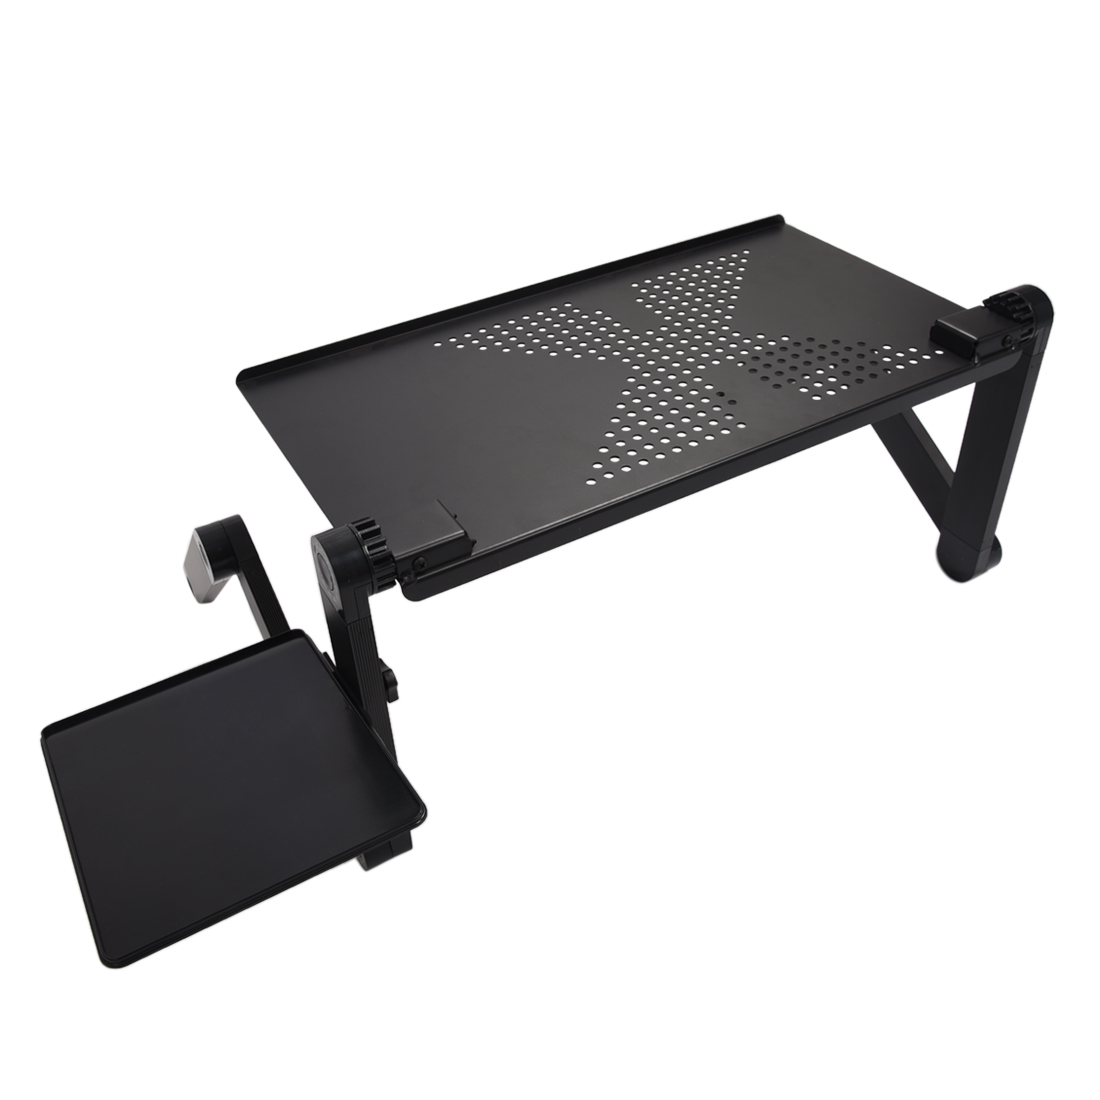 Portable Flexible PC Desk Foldable Adjustable Laptop Notebook Desk Computer Table Stand Tray For Sofa Bed Table Carpet Meadow(China)